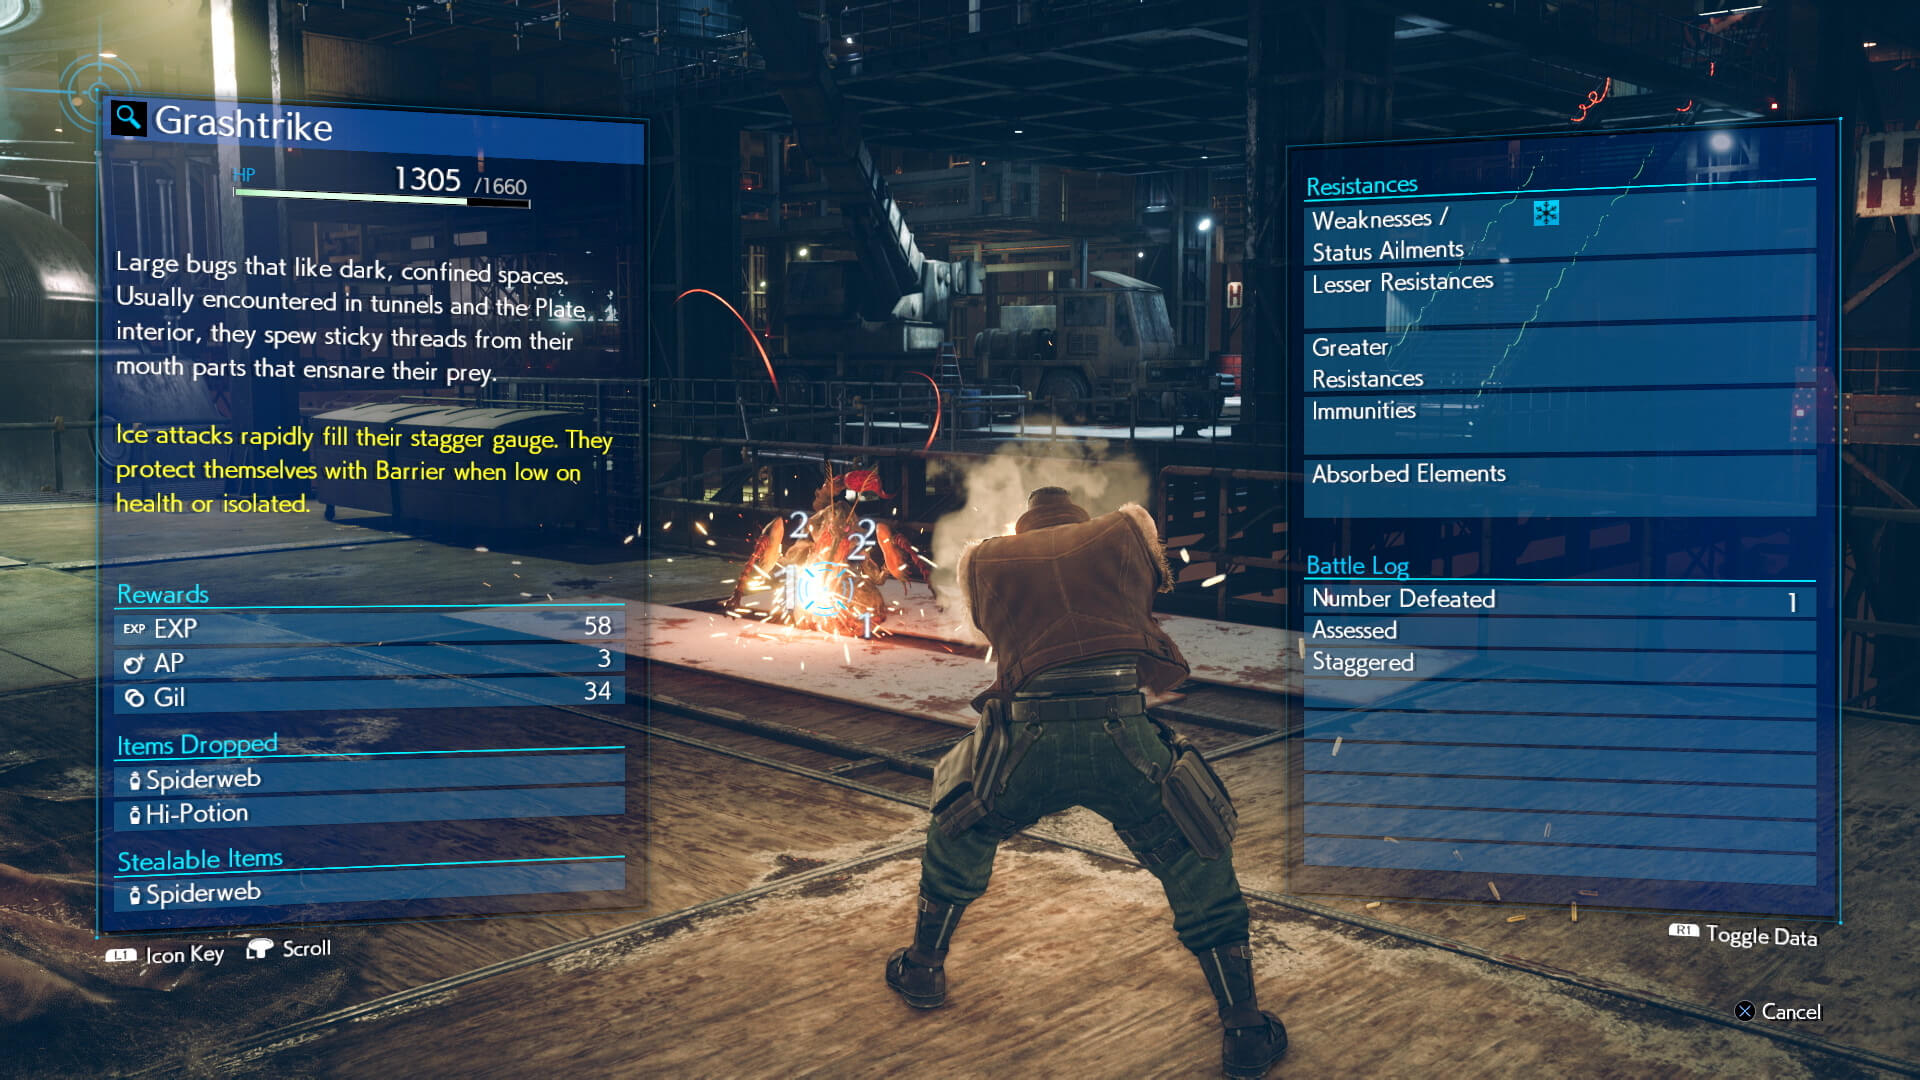 Final Fantasy VII Remake Turns Classic 1990s Game Into a Billion Dollar+ Product